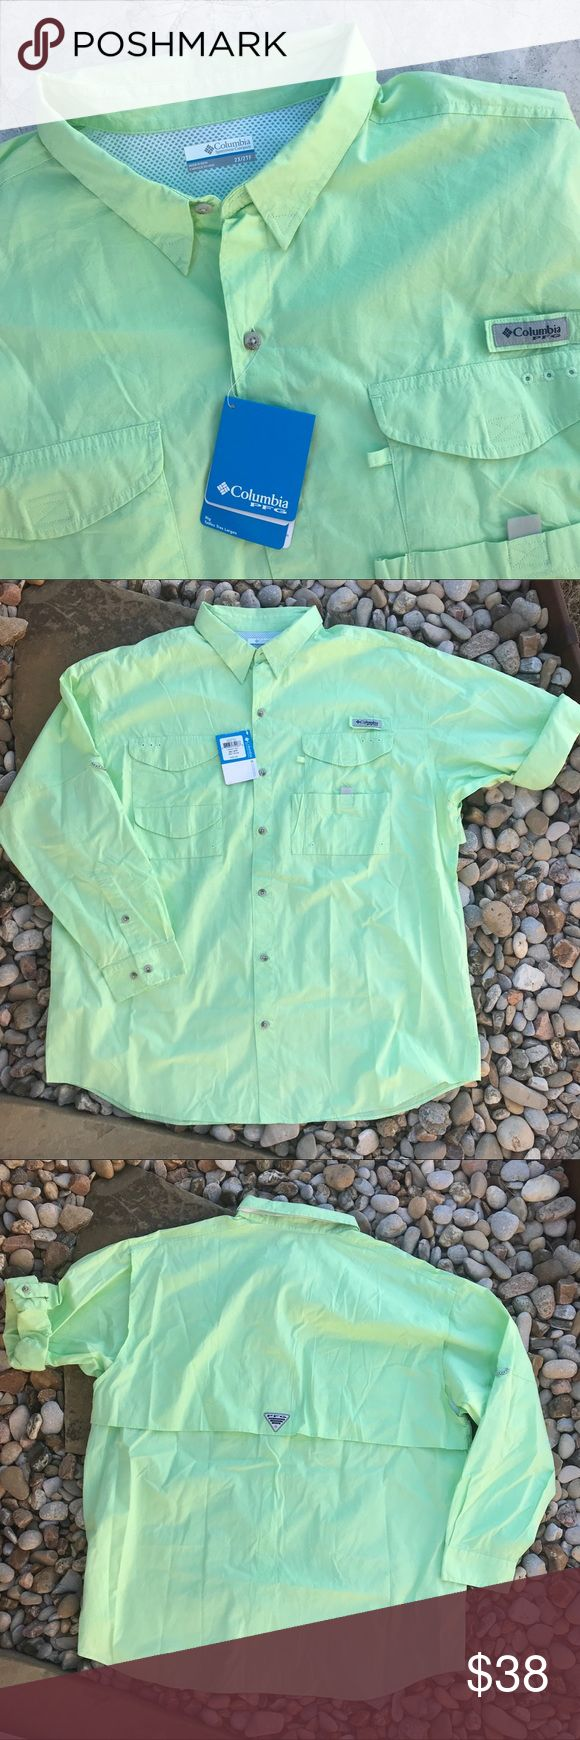 {XXL}Columbia PFG Men's Columbia PFG fishing shirt. Brand new with tags. Long sleeves with strap to roll them up. Beautiful mint green. Perfect for any outdoorsmen or fraternity guy! XXL in size. Columbia Shirts